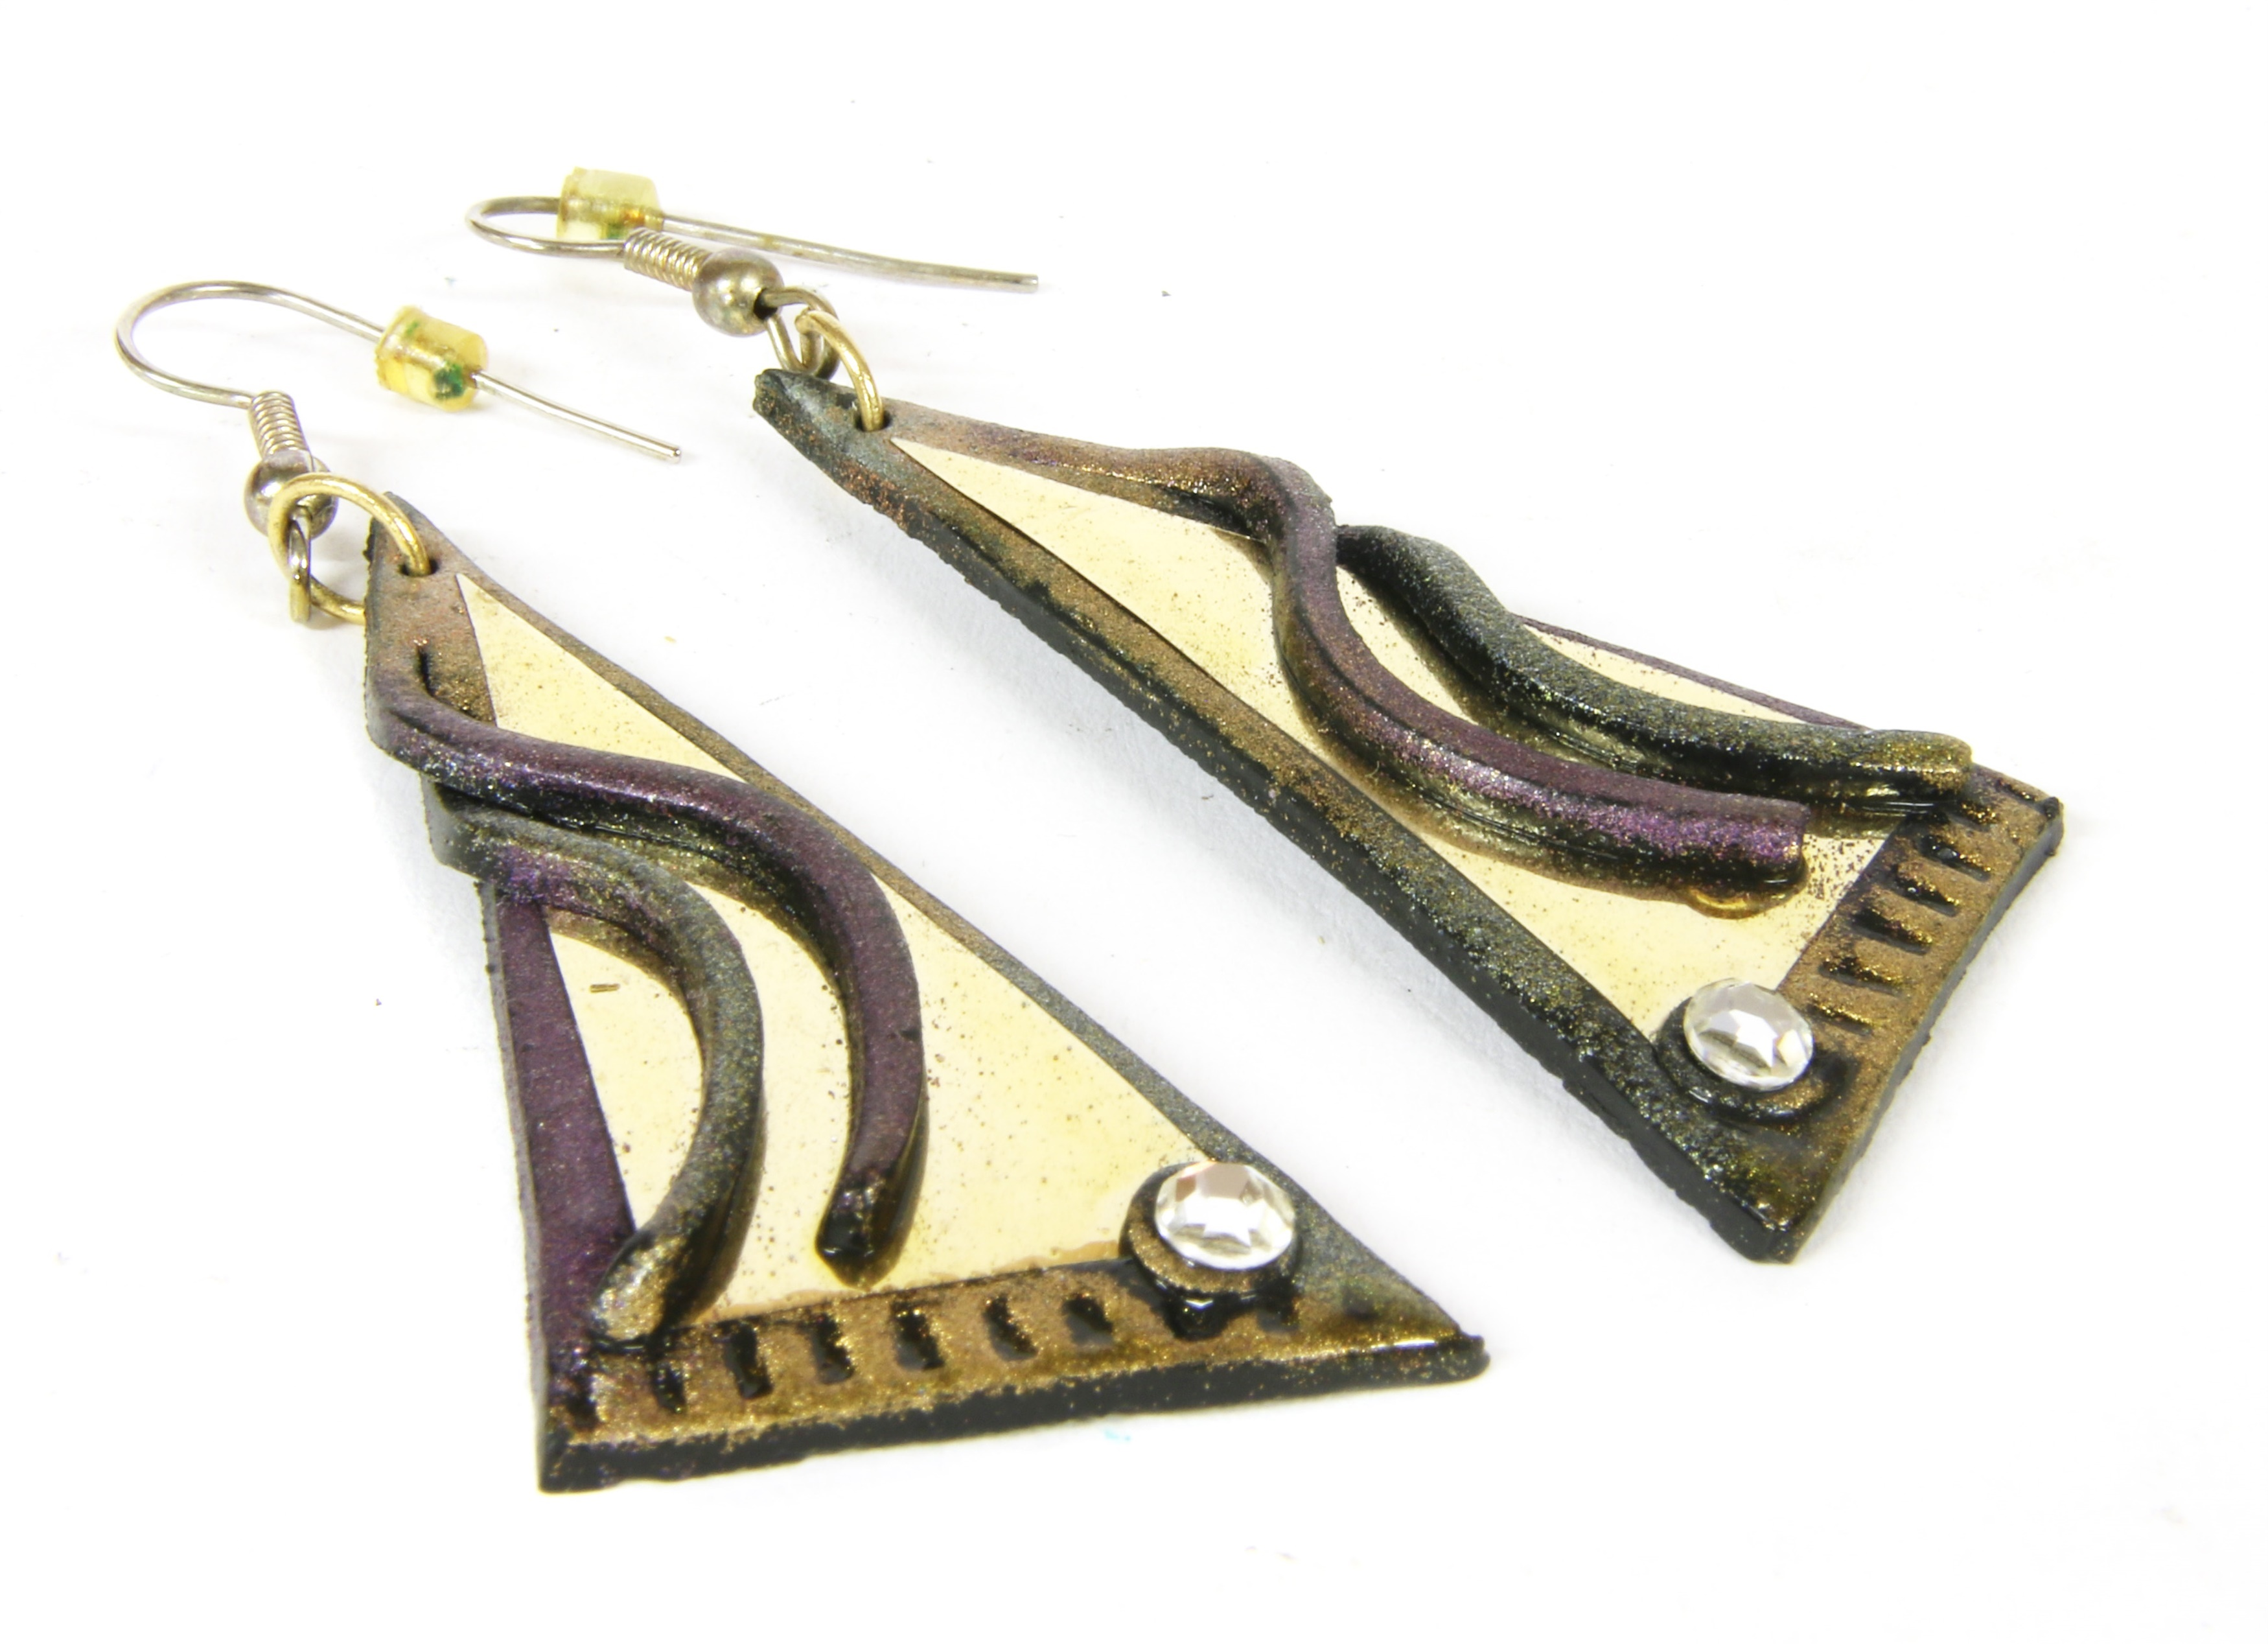 A pair of earrings by Andrew Logan (b.1945), purchased directly from Andrew Logan, c.1980, when the vendor worked for Zandra Rhodes.